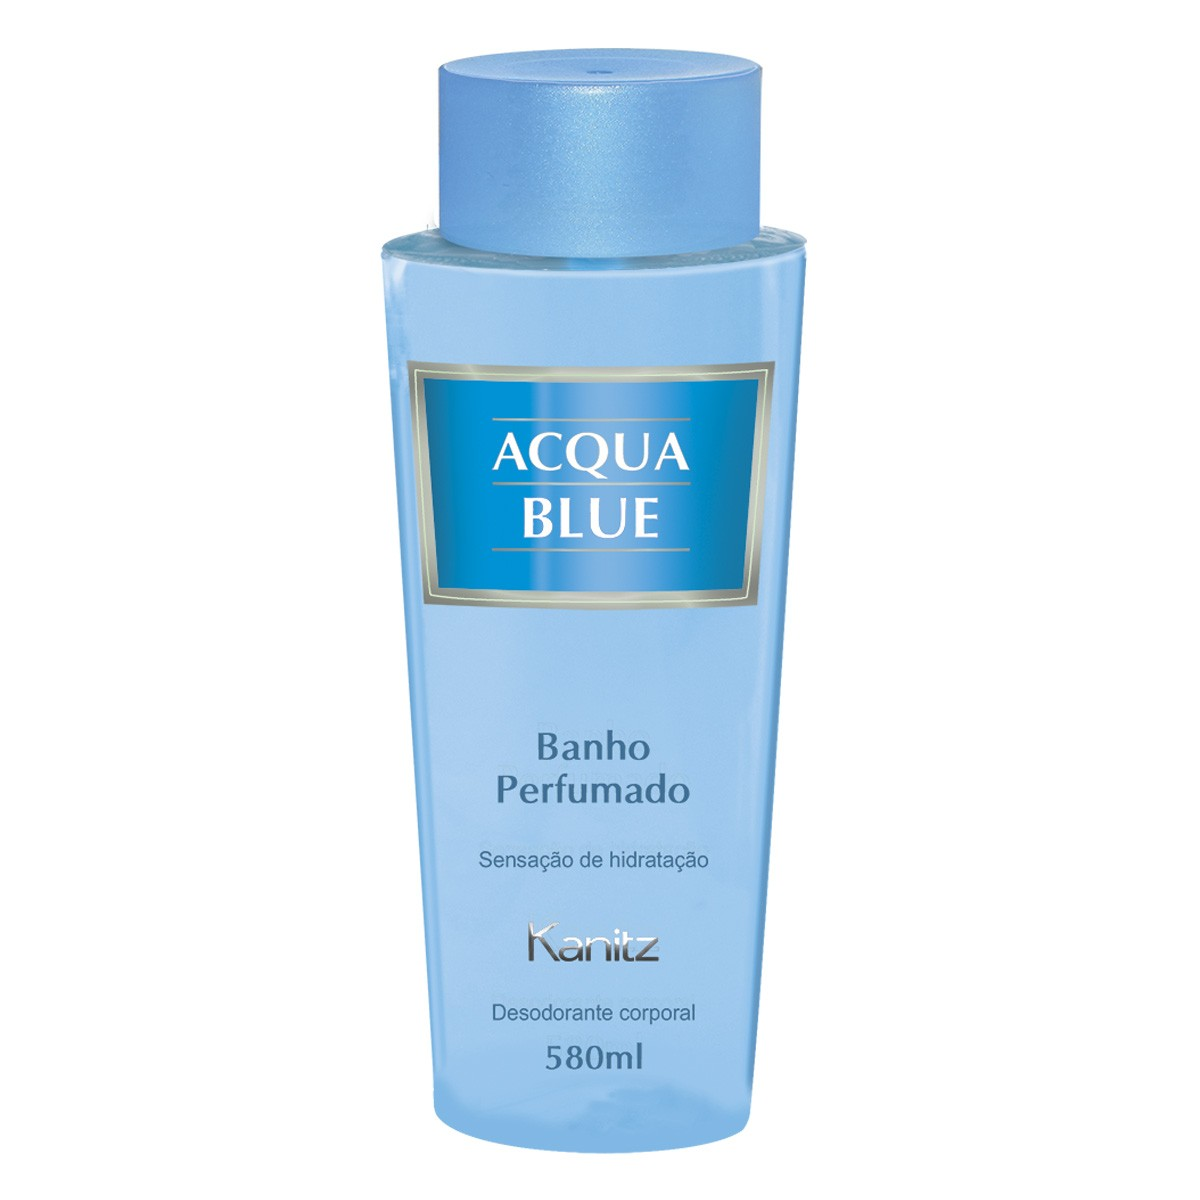 Deo Colônia Acqua Blue 580ml